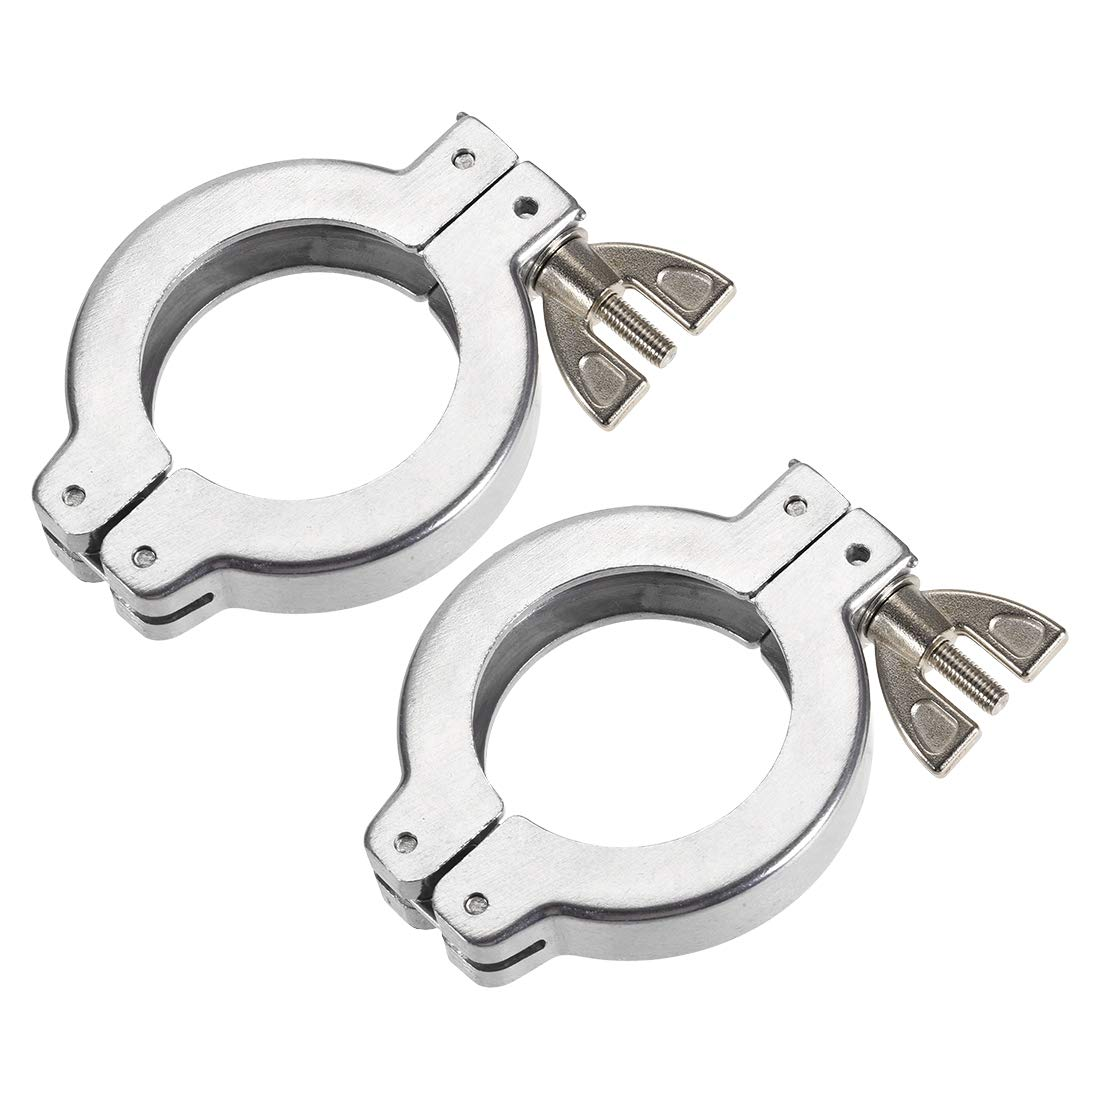 uxcell 2 Pcs Sanitary Tri-Clamp 68mm X 46mm Single Pin Tri Clamp Wing Nut for Ferrule TC